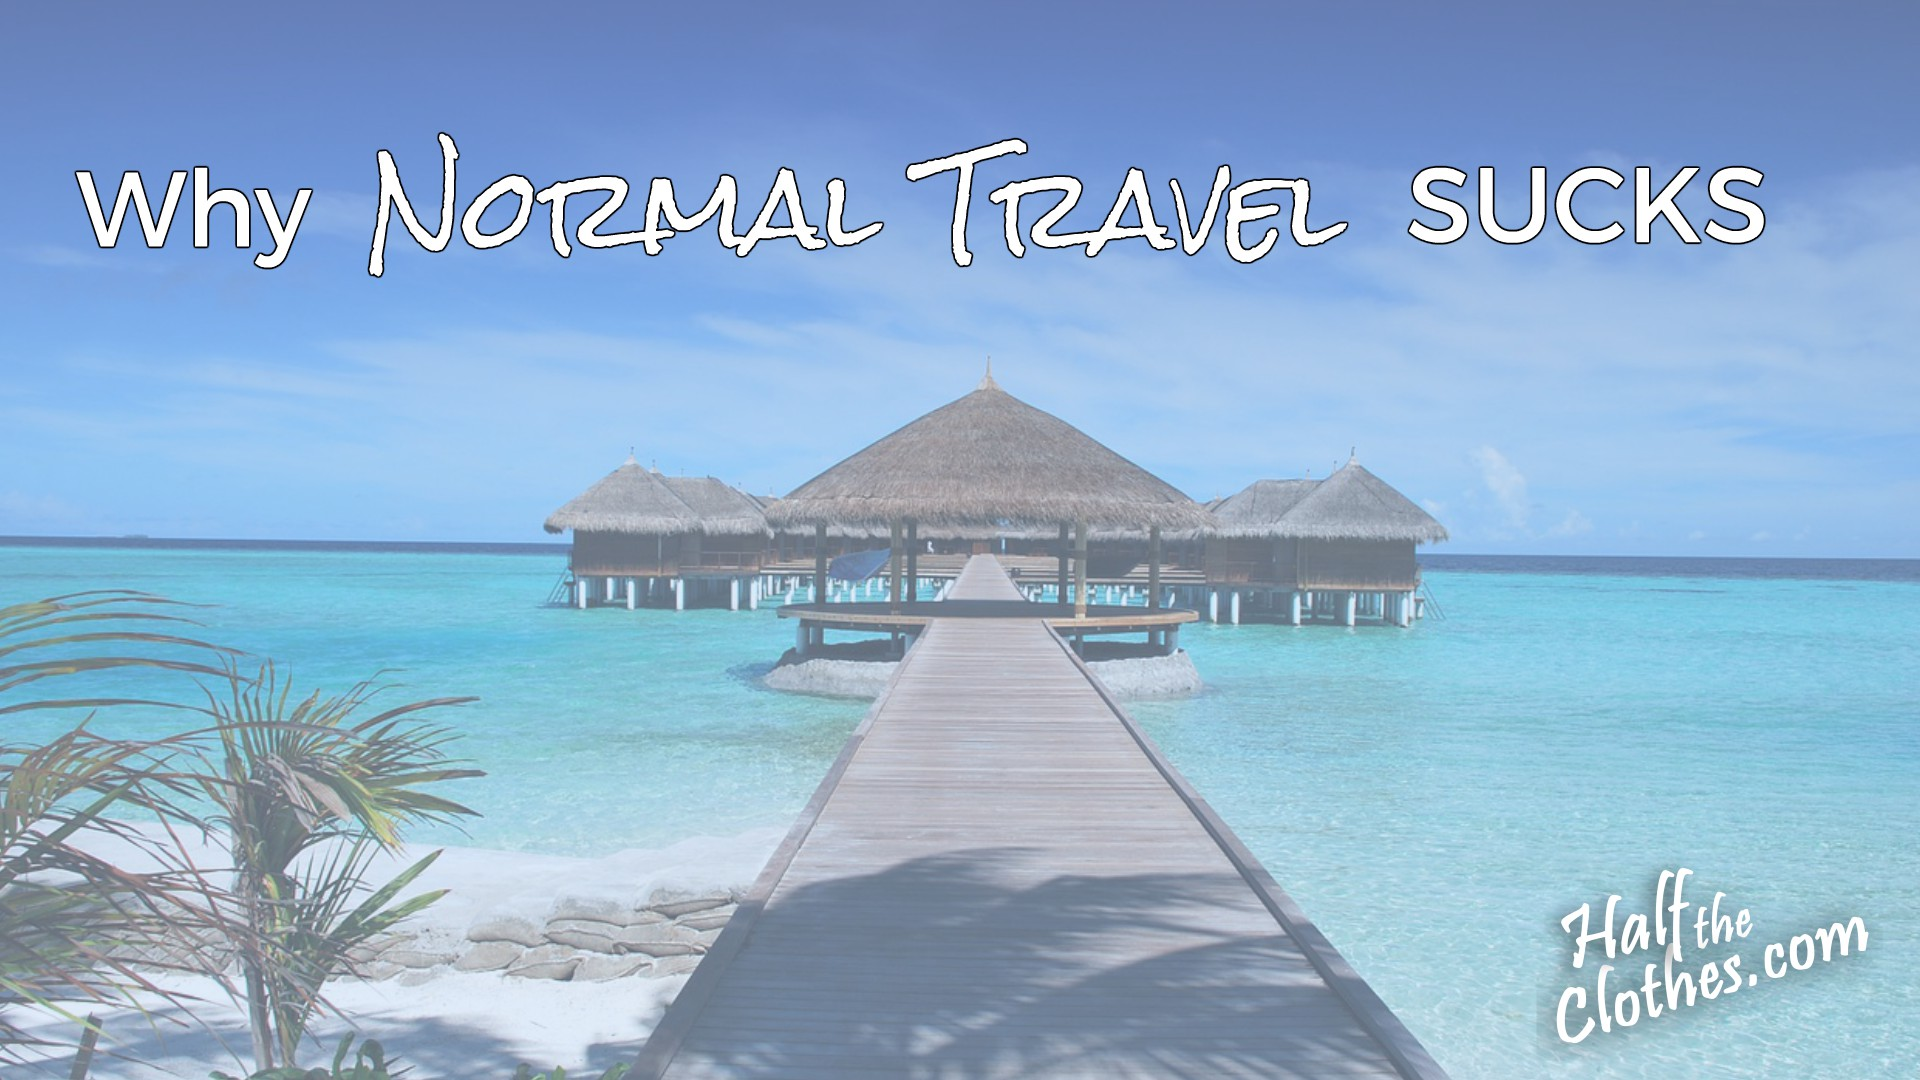 slow travel blog talks about slow travel experience being best and cheapest